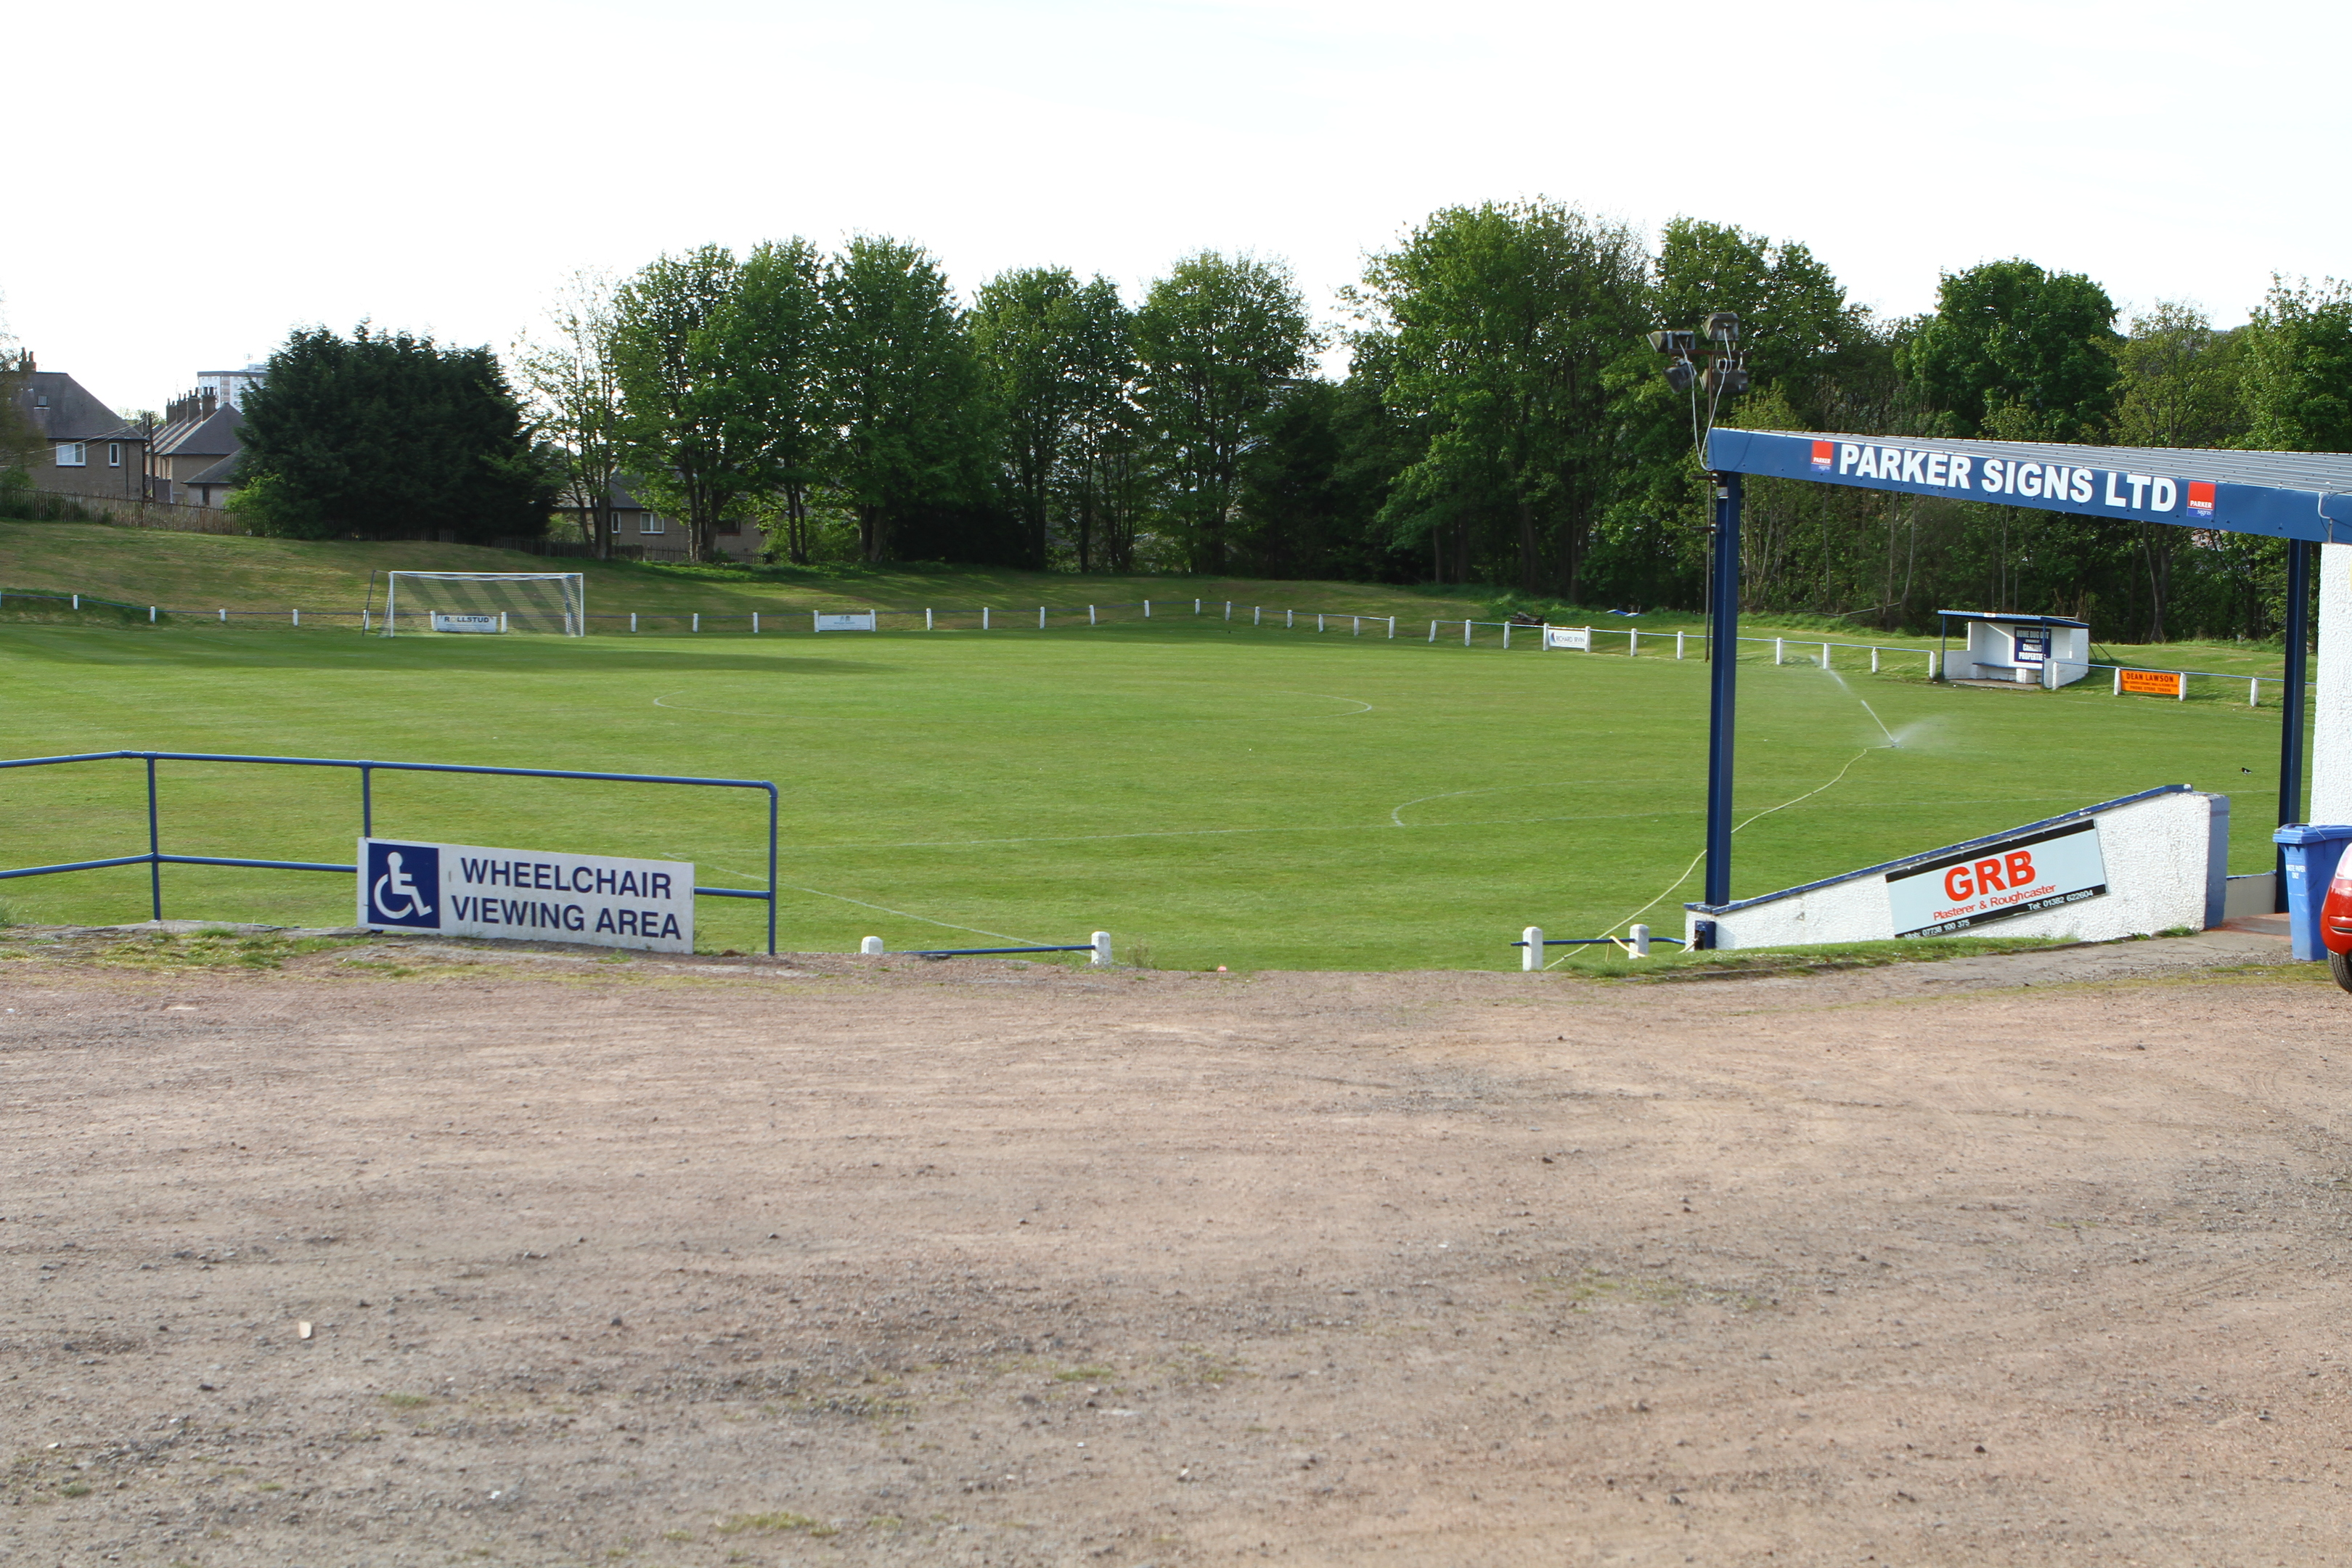 Thomson Park, home of Lochee United.